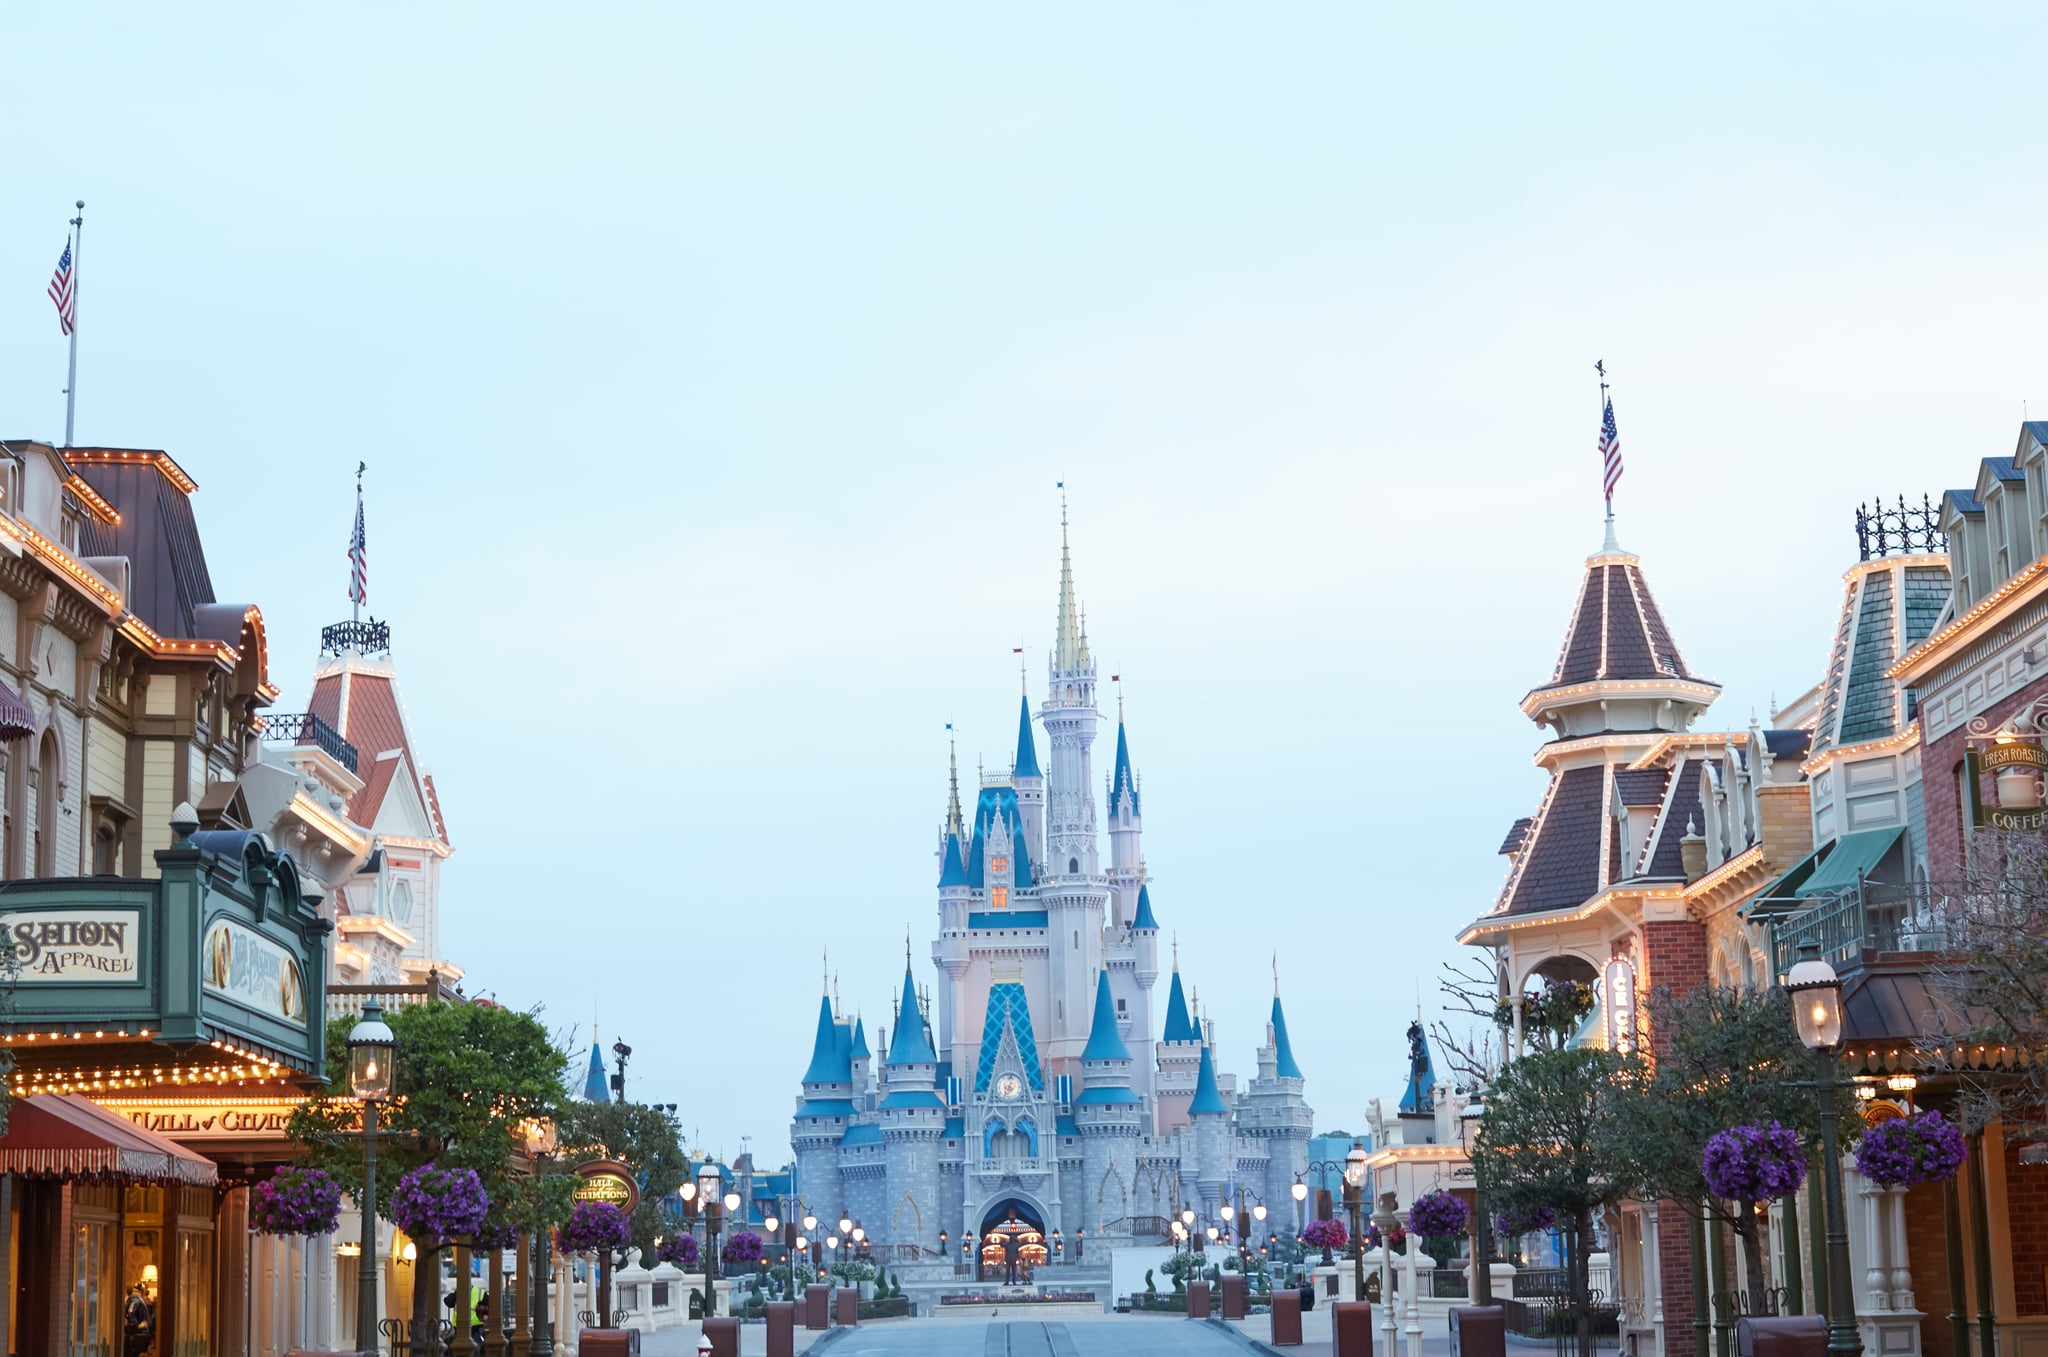 History of disney world ticket prices popsugar smart living as disney park admission costs continue to rise nearly every year its hard to imagine a time when tickets were reasonably affordable publicscrutiny Image collections